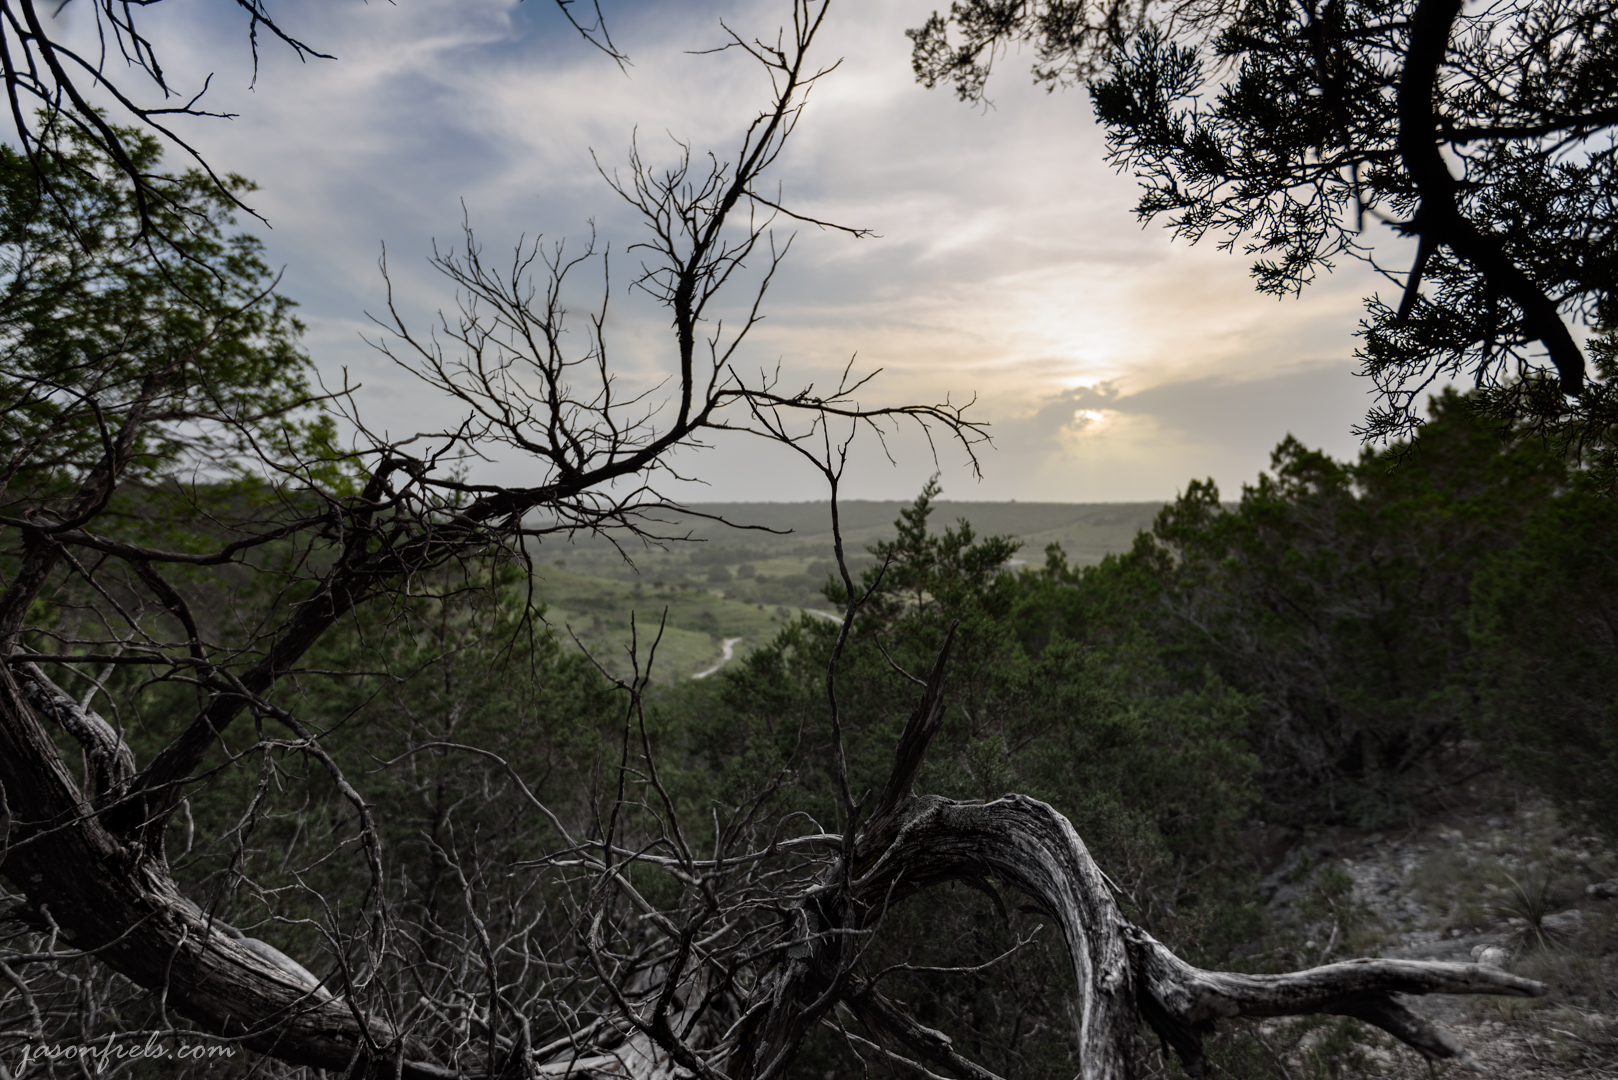 Hazy Sky at Balcones Canyonlands National Wildlife Regfuge